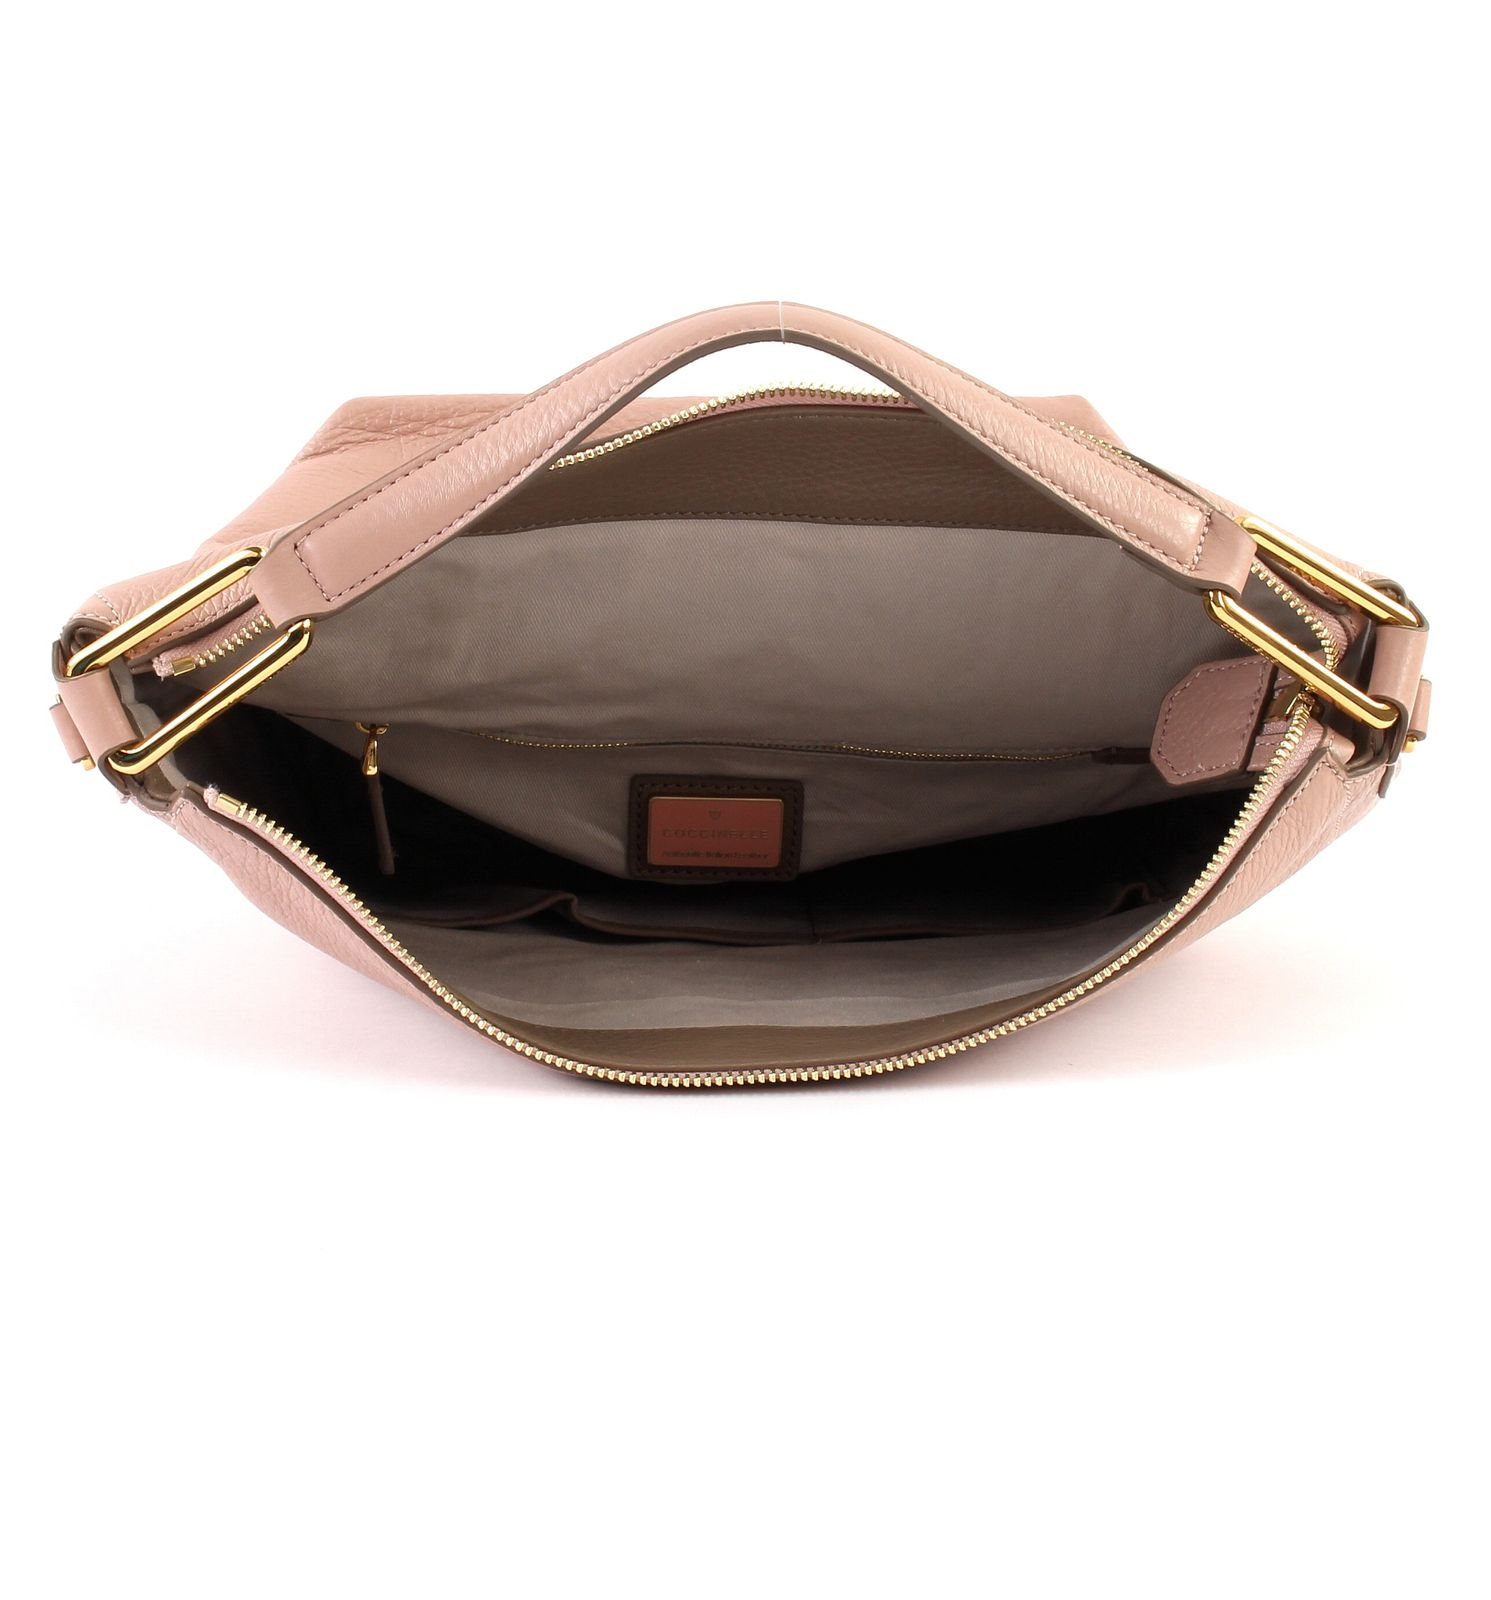 878ee260dd38 ... 01 01 321COCCINELLE Liya Small Hobo Bag Pivoine   Taupe   237